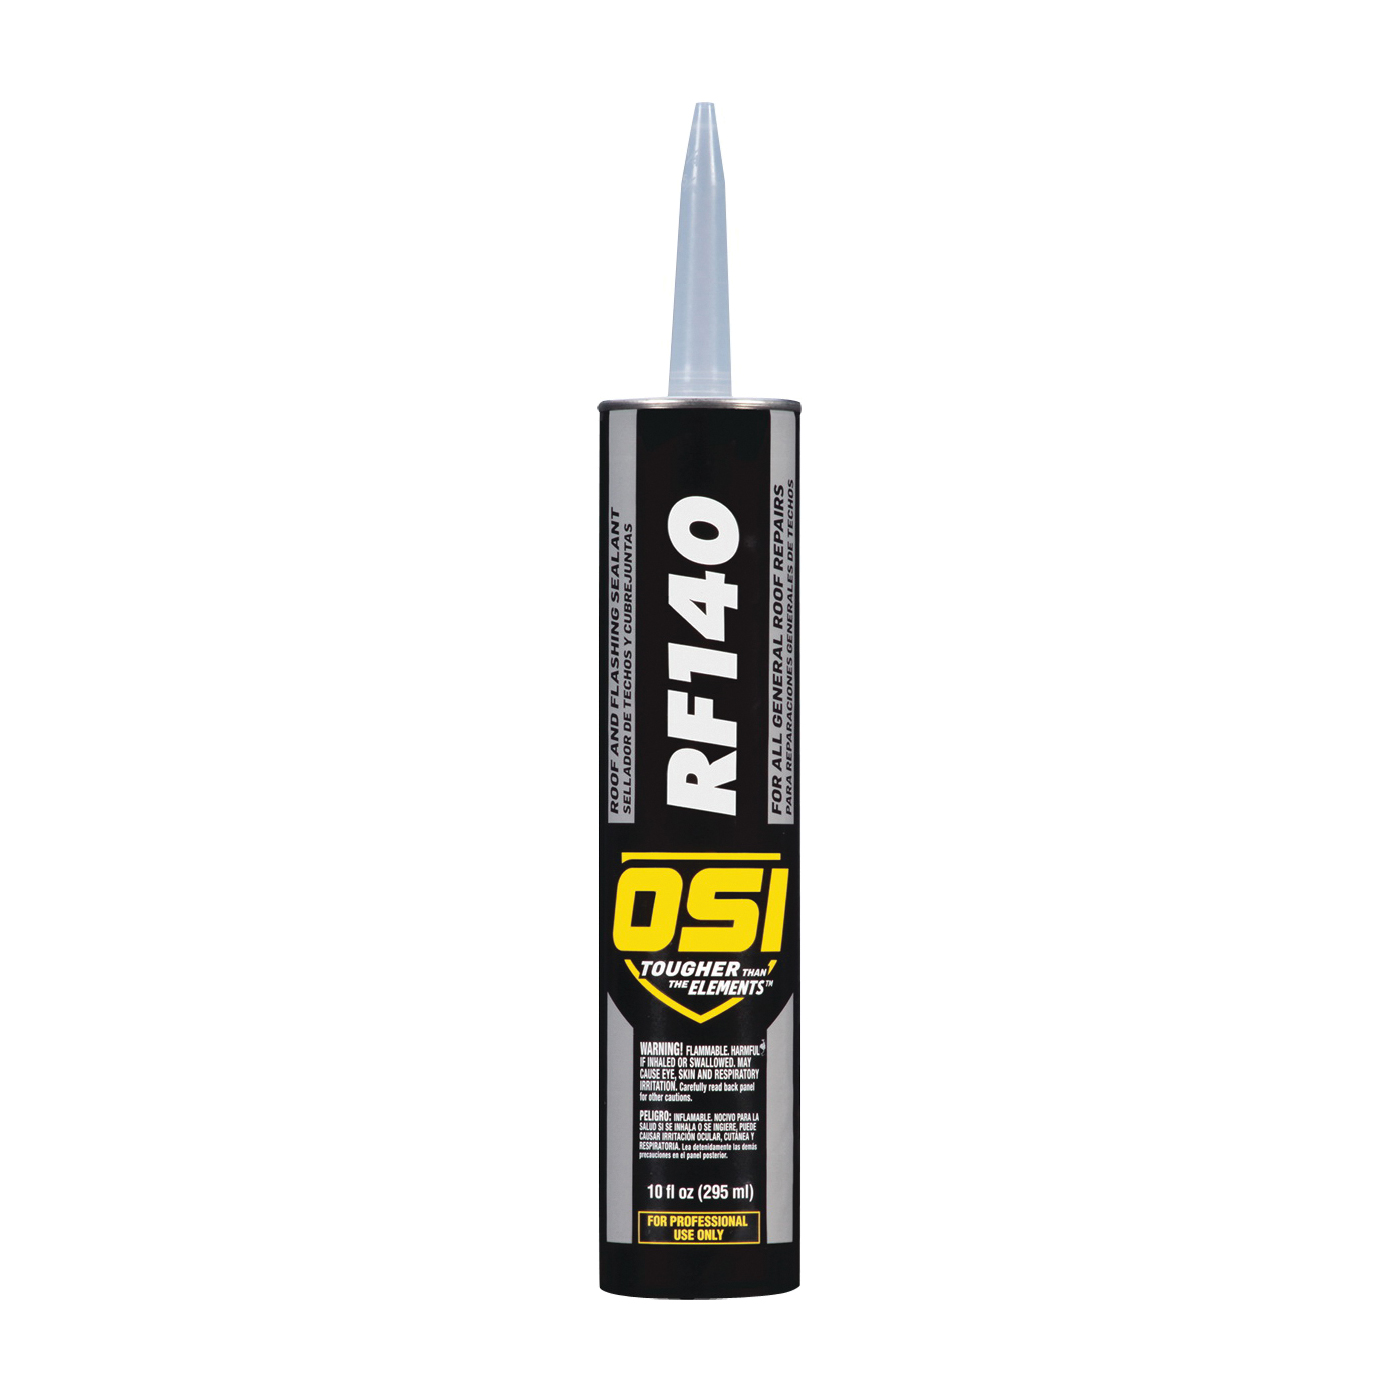 Picture of OSI RF140 Series 1938618 Roof and Flashing Sealant, Black, Liquid, 10.5 oz Package, Cartridge